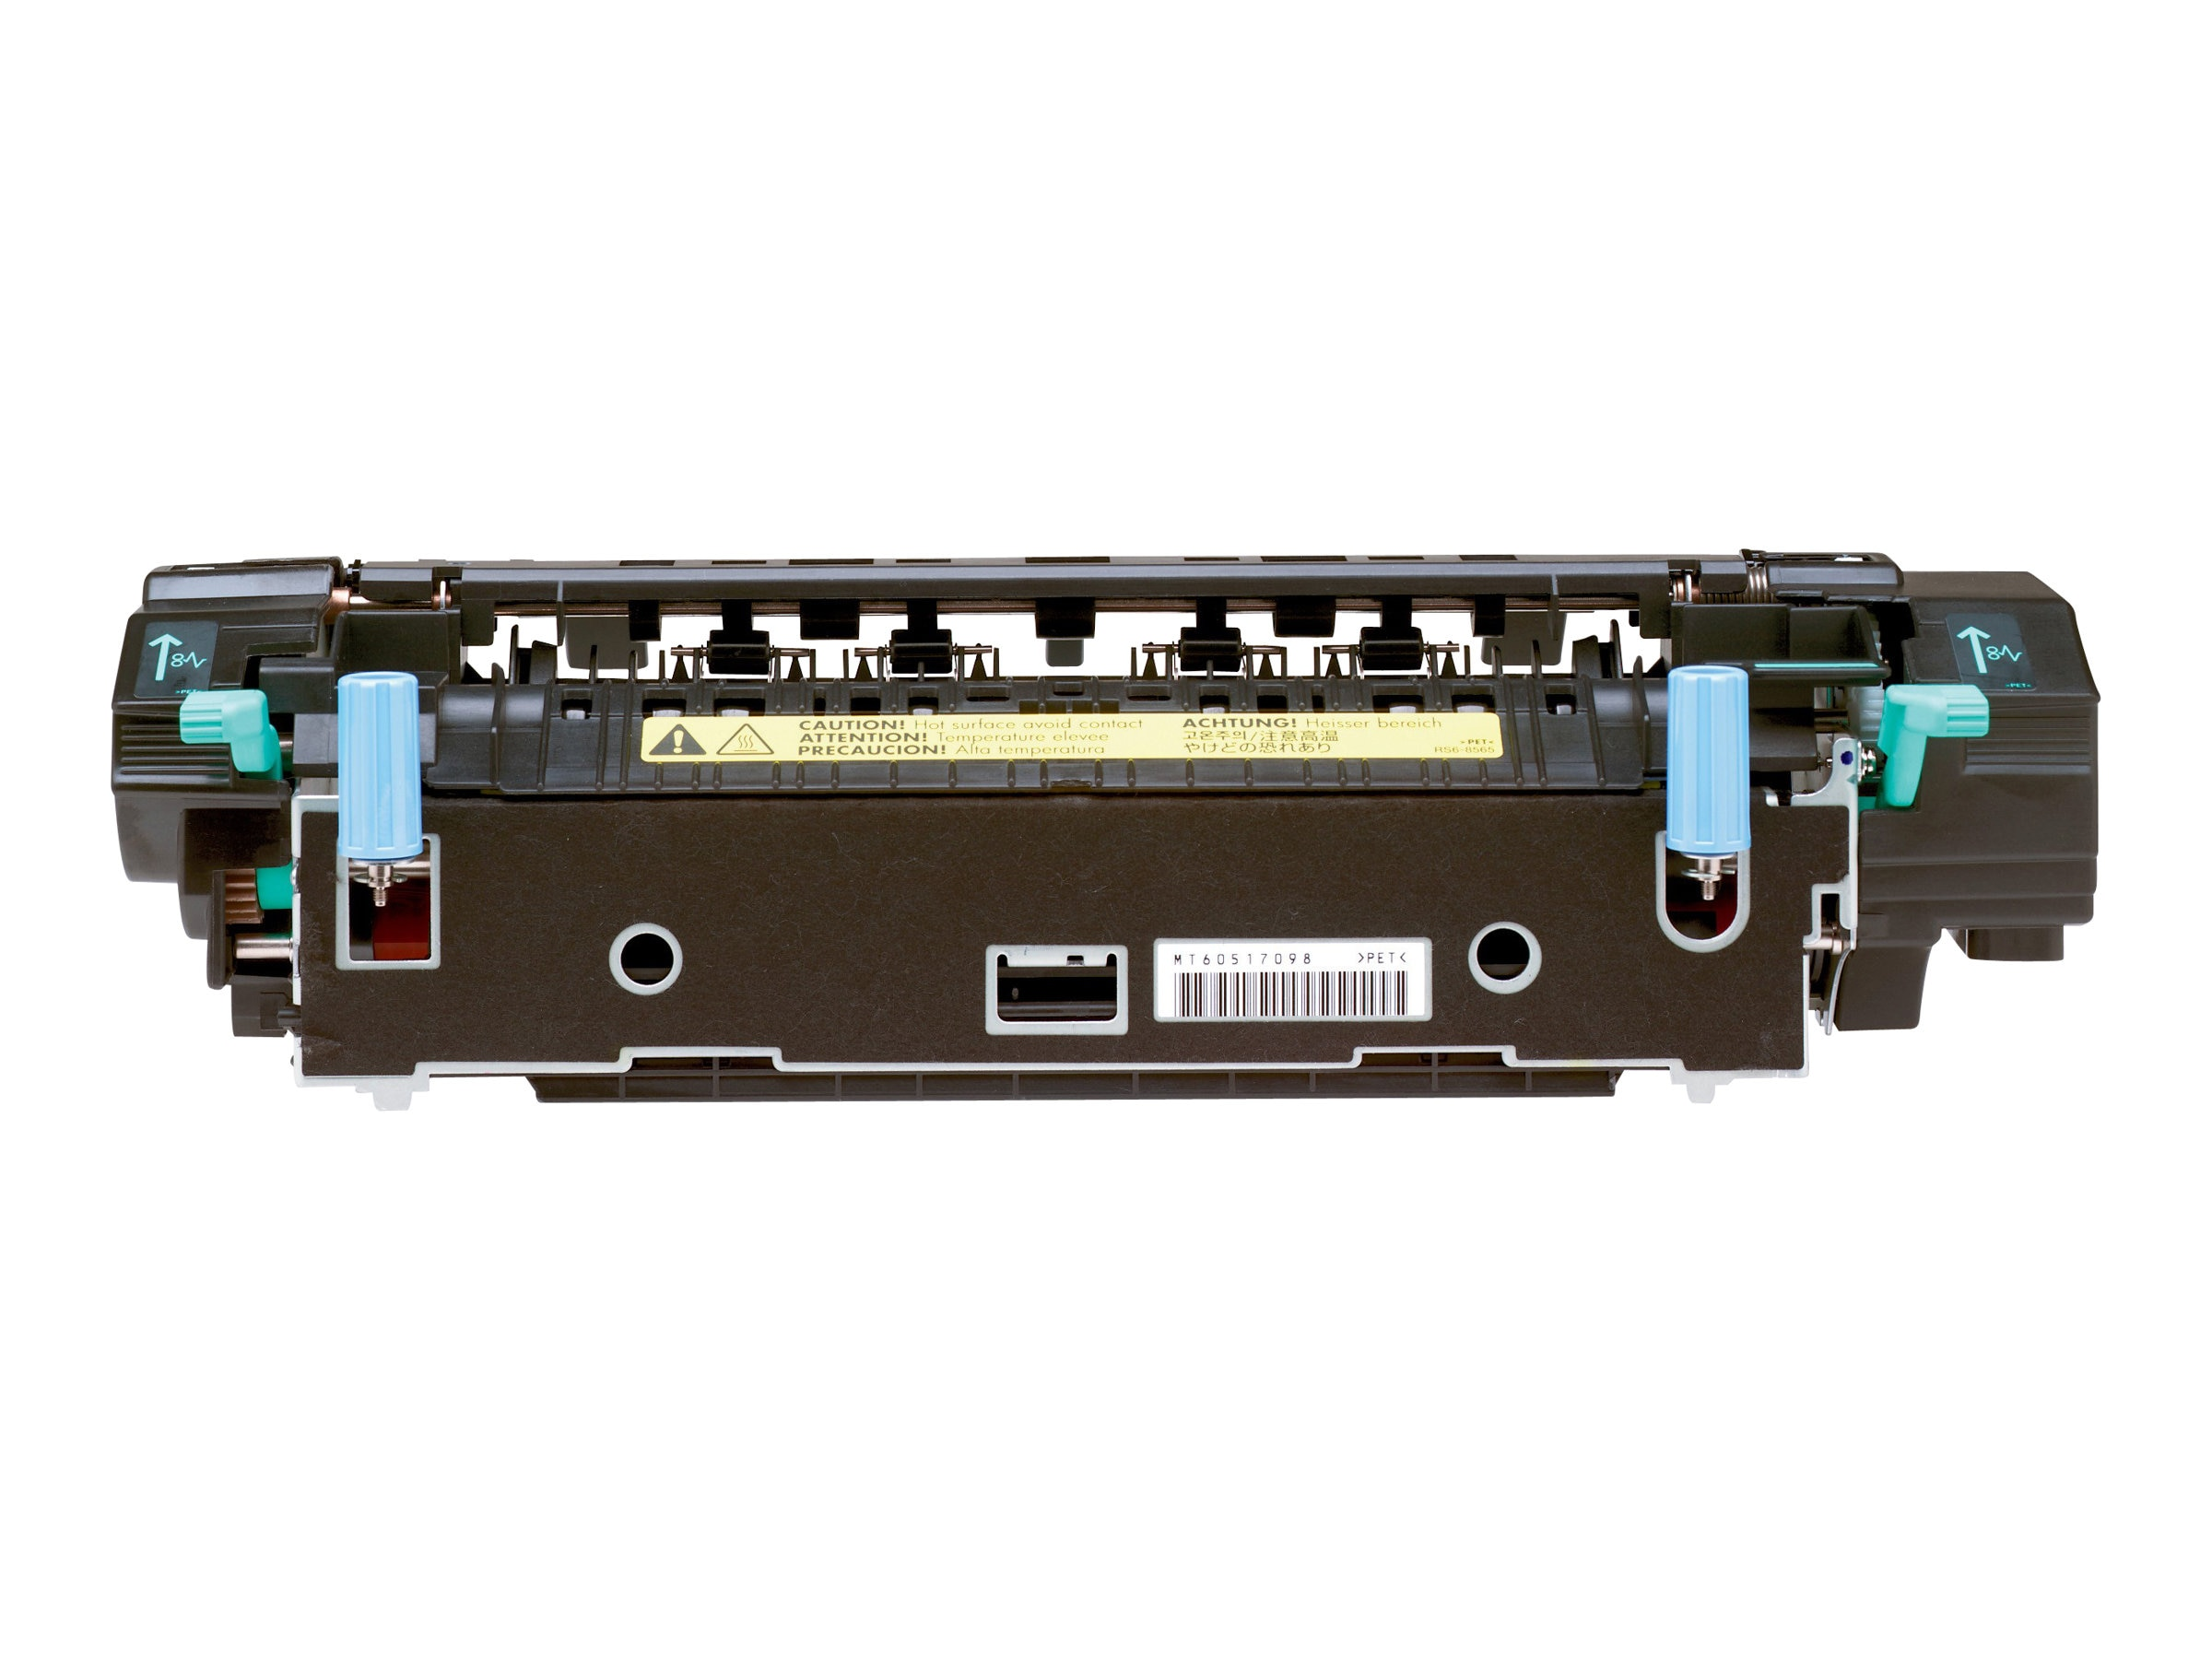 HP Color LaserJet 4600 Image Fuser Kit - 220V, C9726A, 356617, Printer Accessories